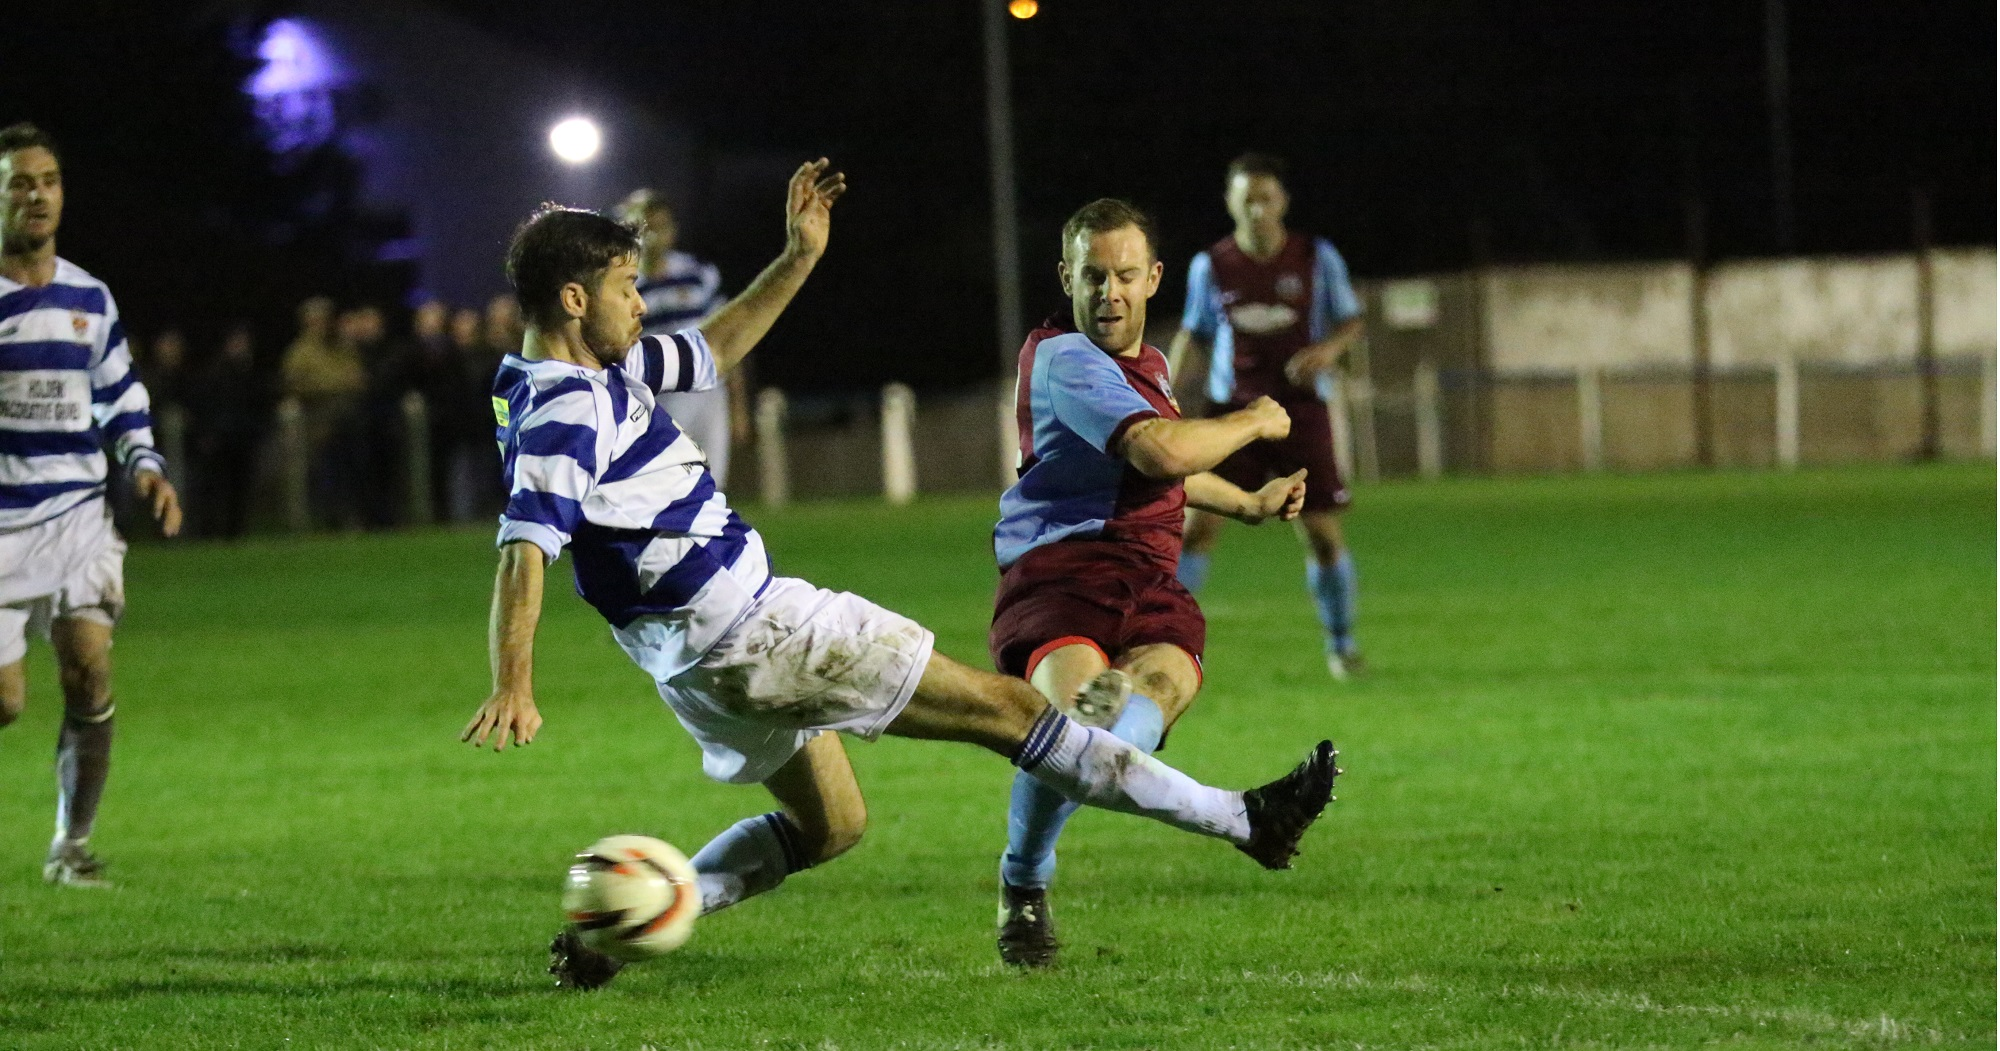 Preview: Chester-le-Street vs South Shields